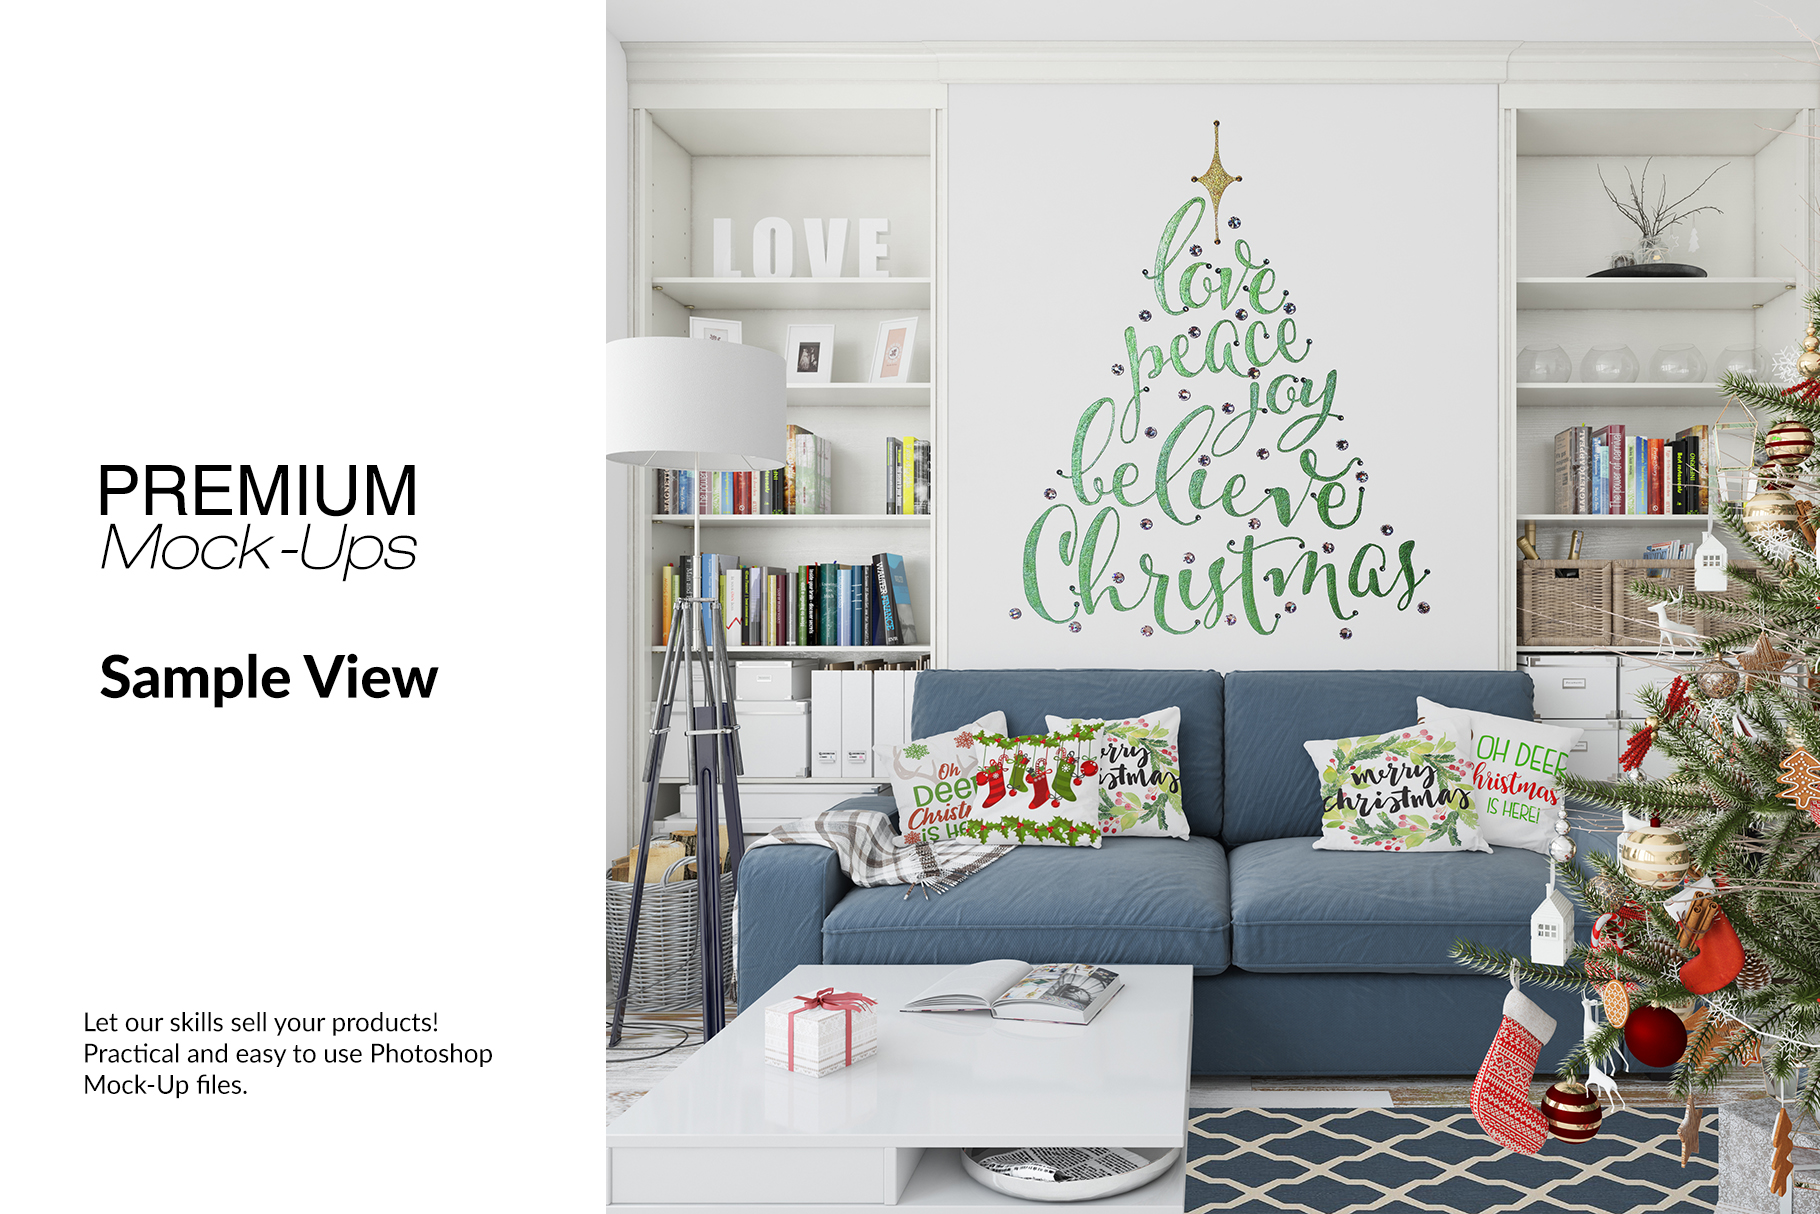 Christmas Living Room Set - Throw Pillows Frames & Wall example image 8